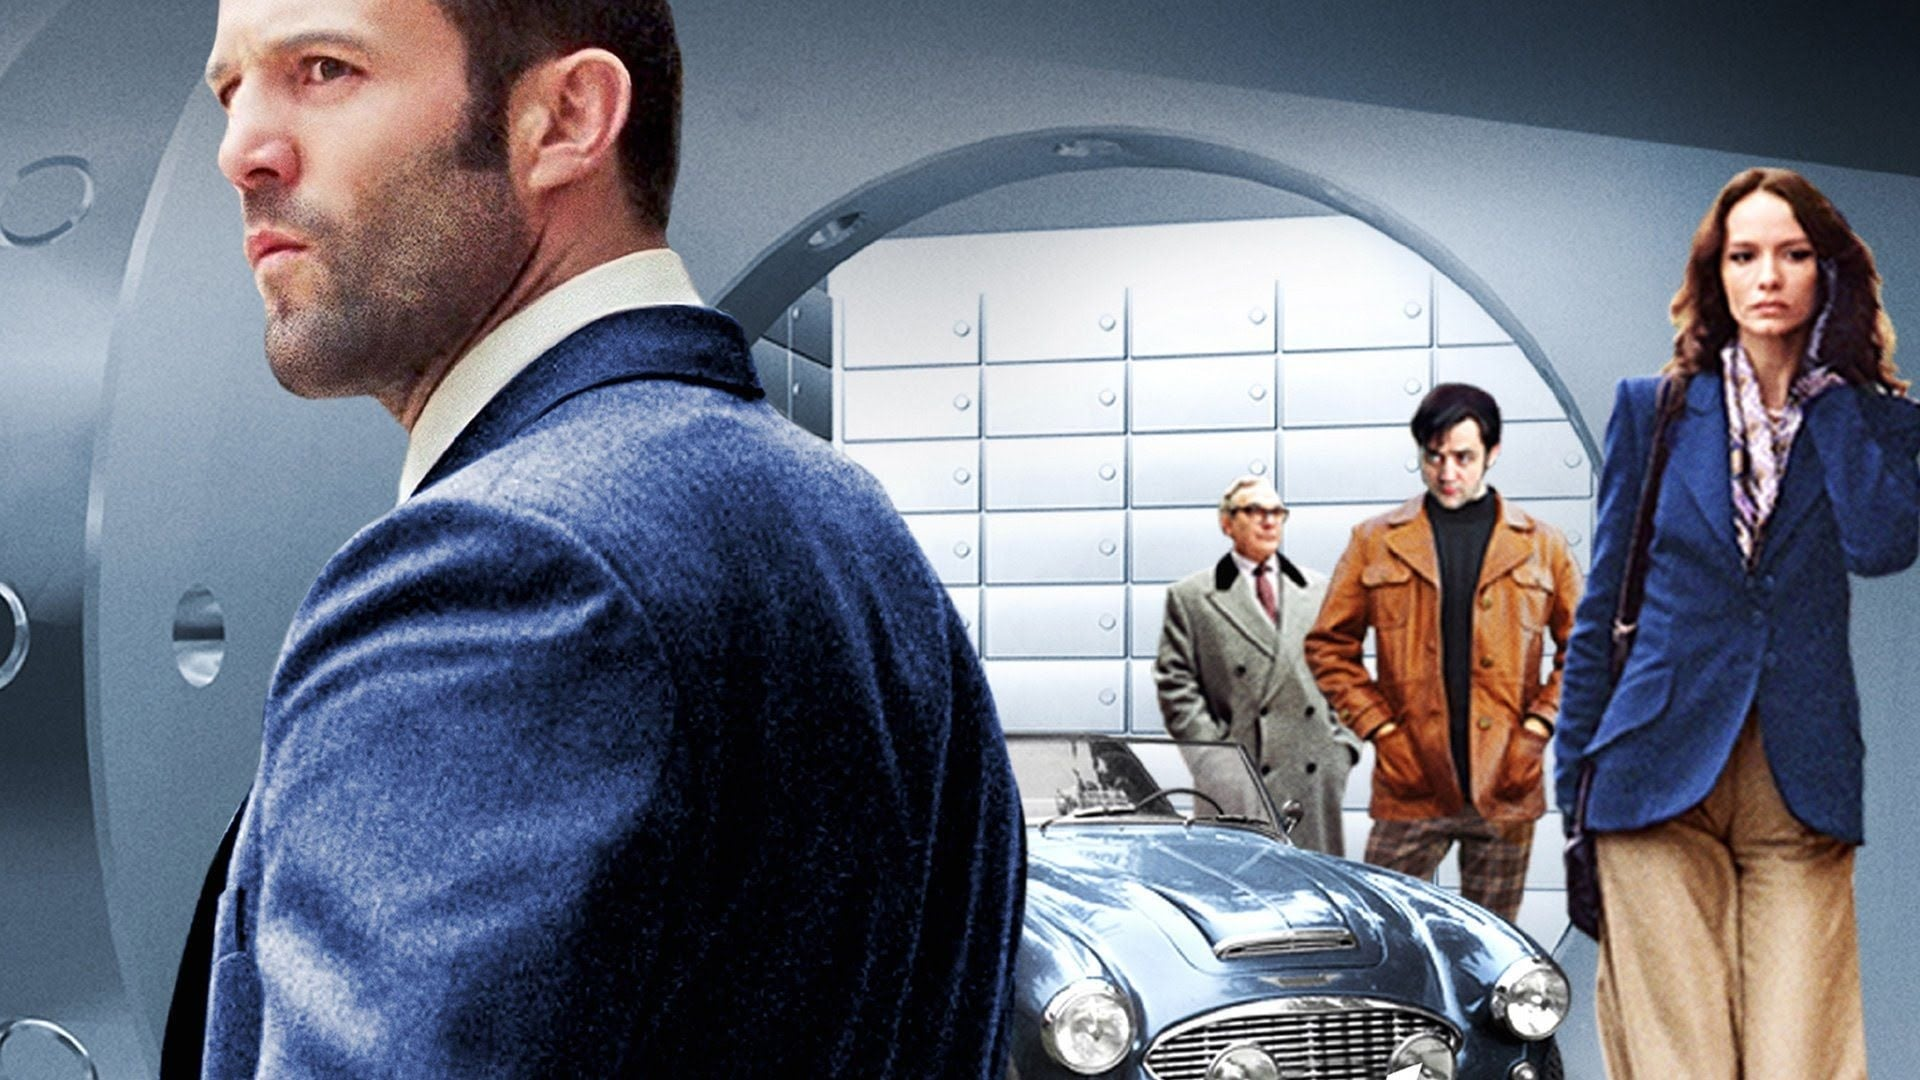 The Bank Job Movie Streaming Online Watch on Amazon